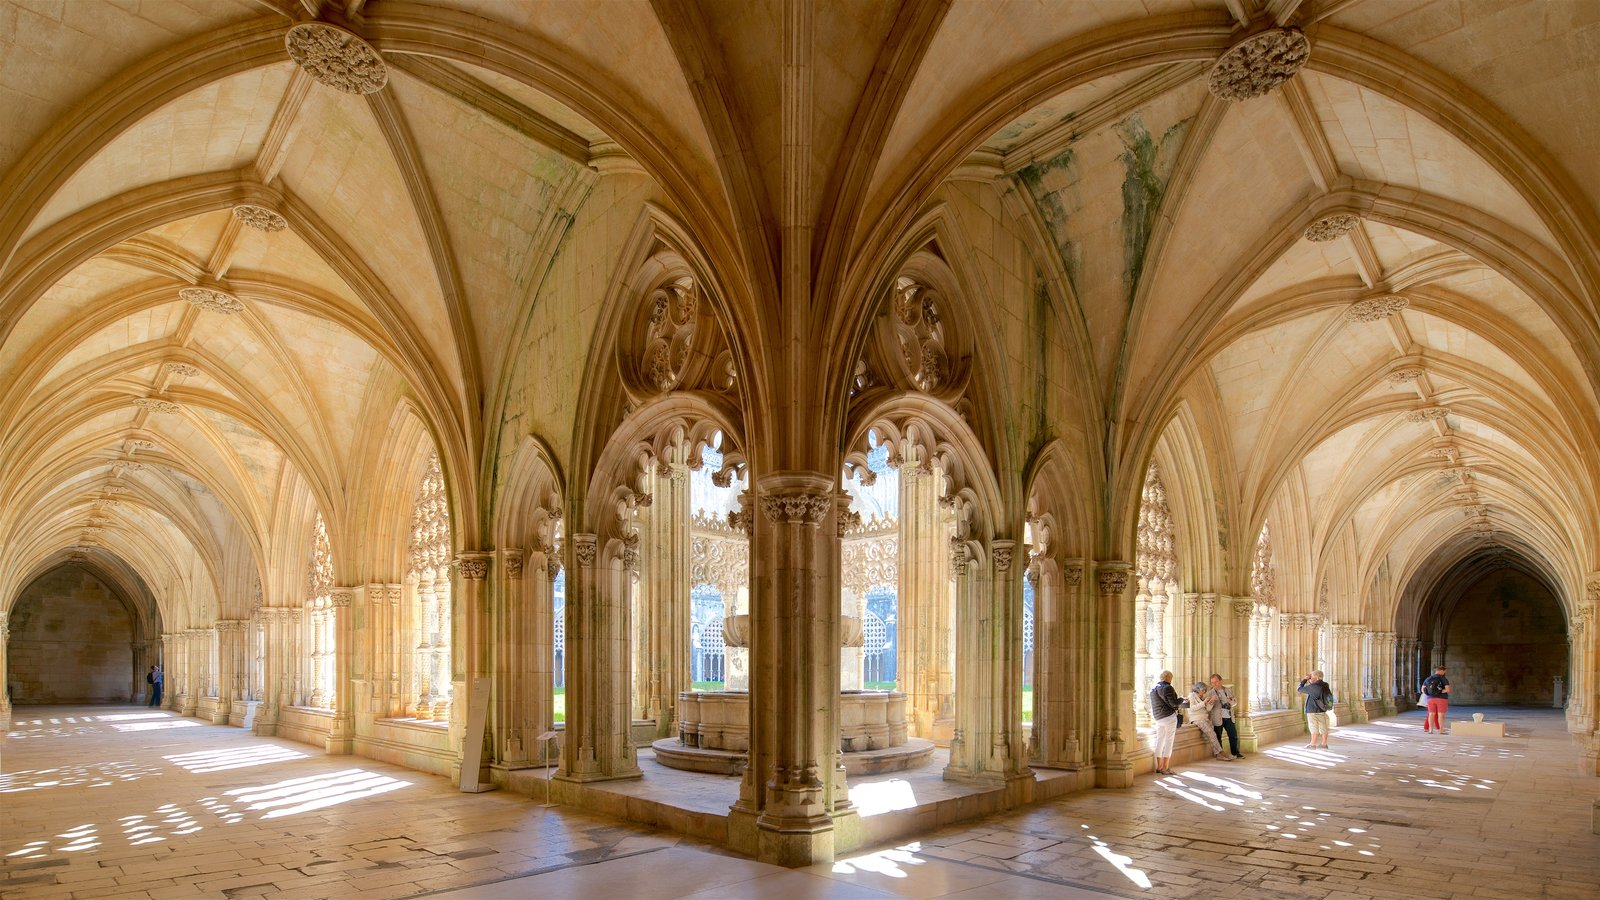 Batalha Monastery which includes interior views and heritage elements